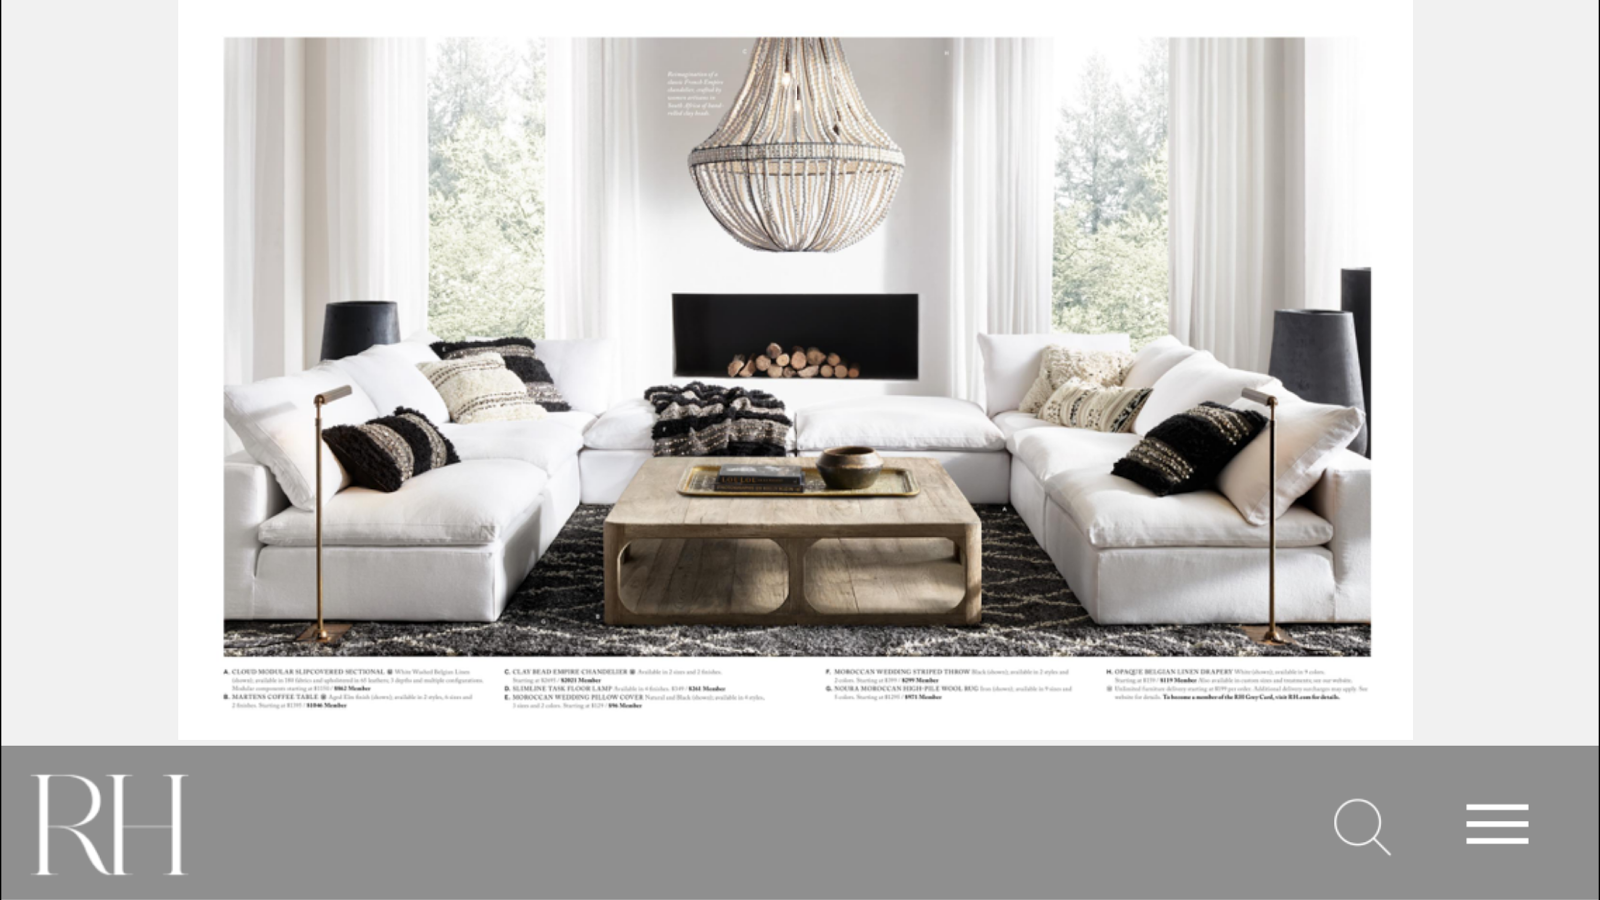 Restoration hardware android apps on google play for Restoration hardware online shopping